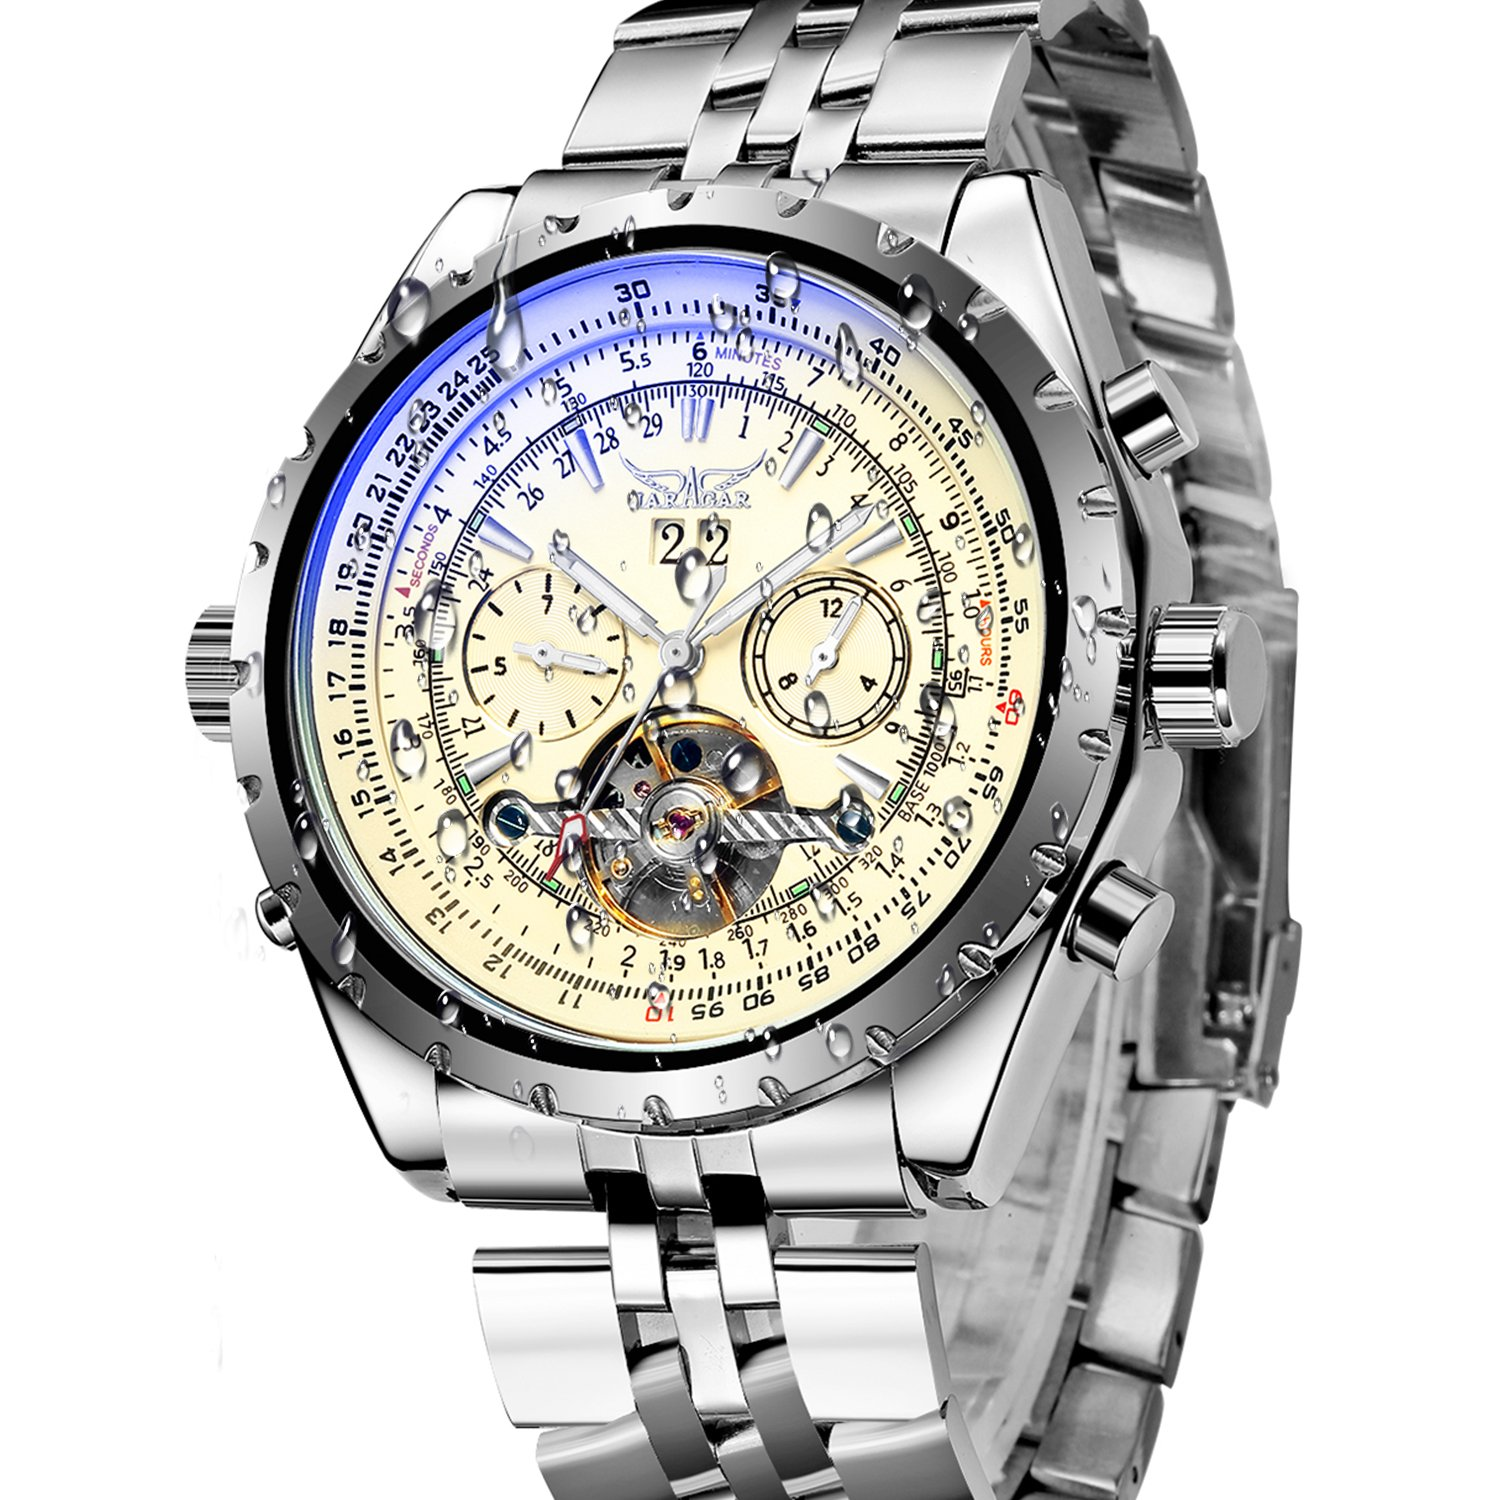 Amazon.com: Gute Pro Multi-Functional Automatic Mechanical Watch for Mens Chrome Steel Luminous Calendar (Beige Face): Watches